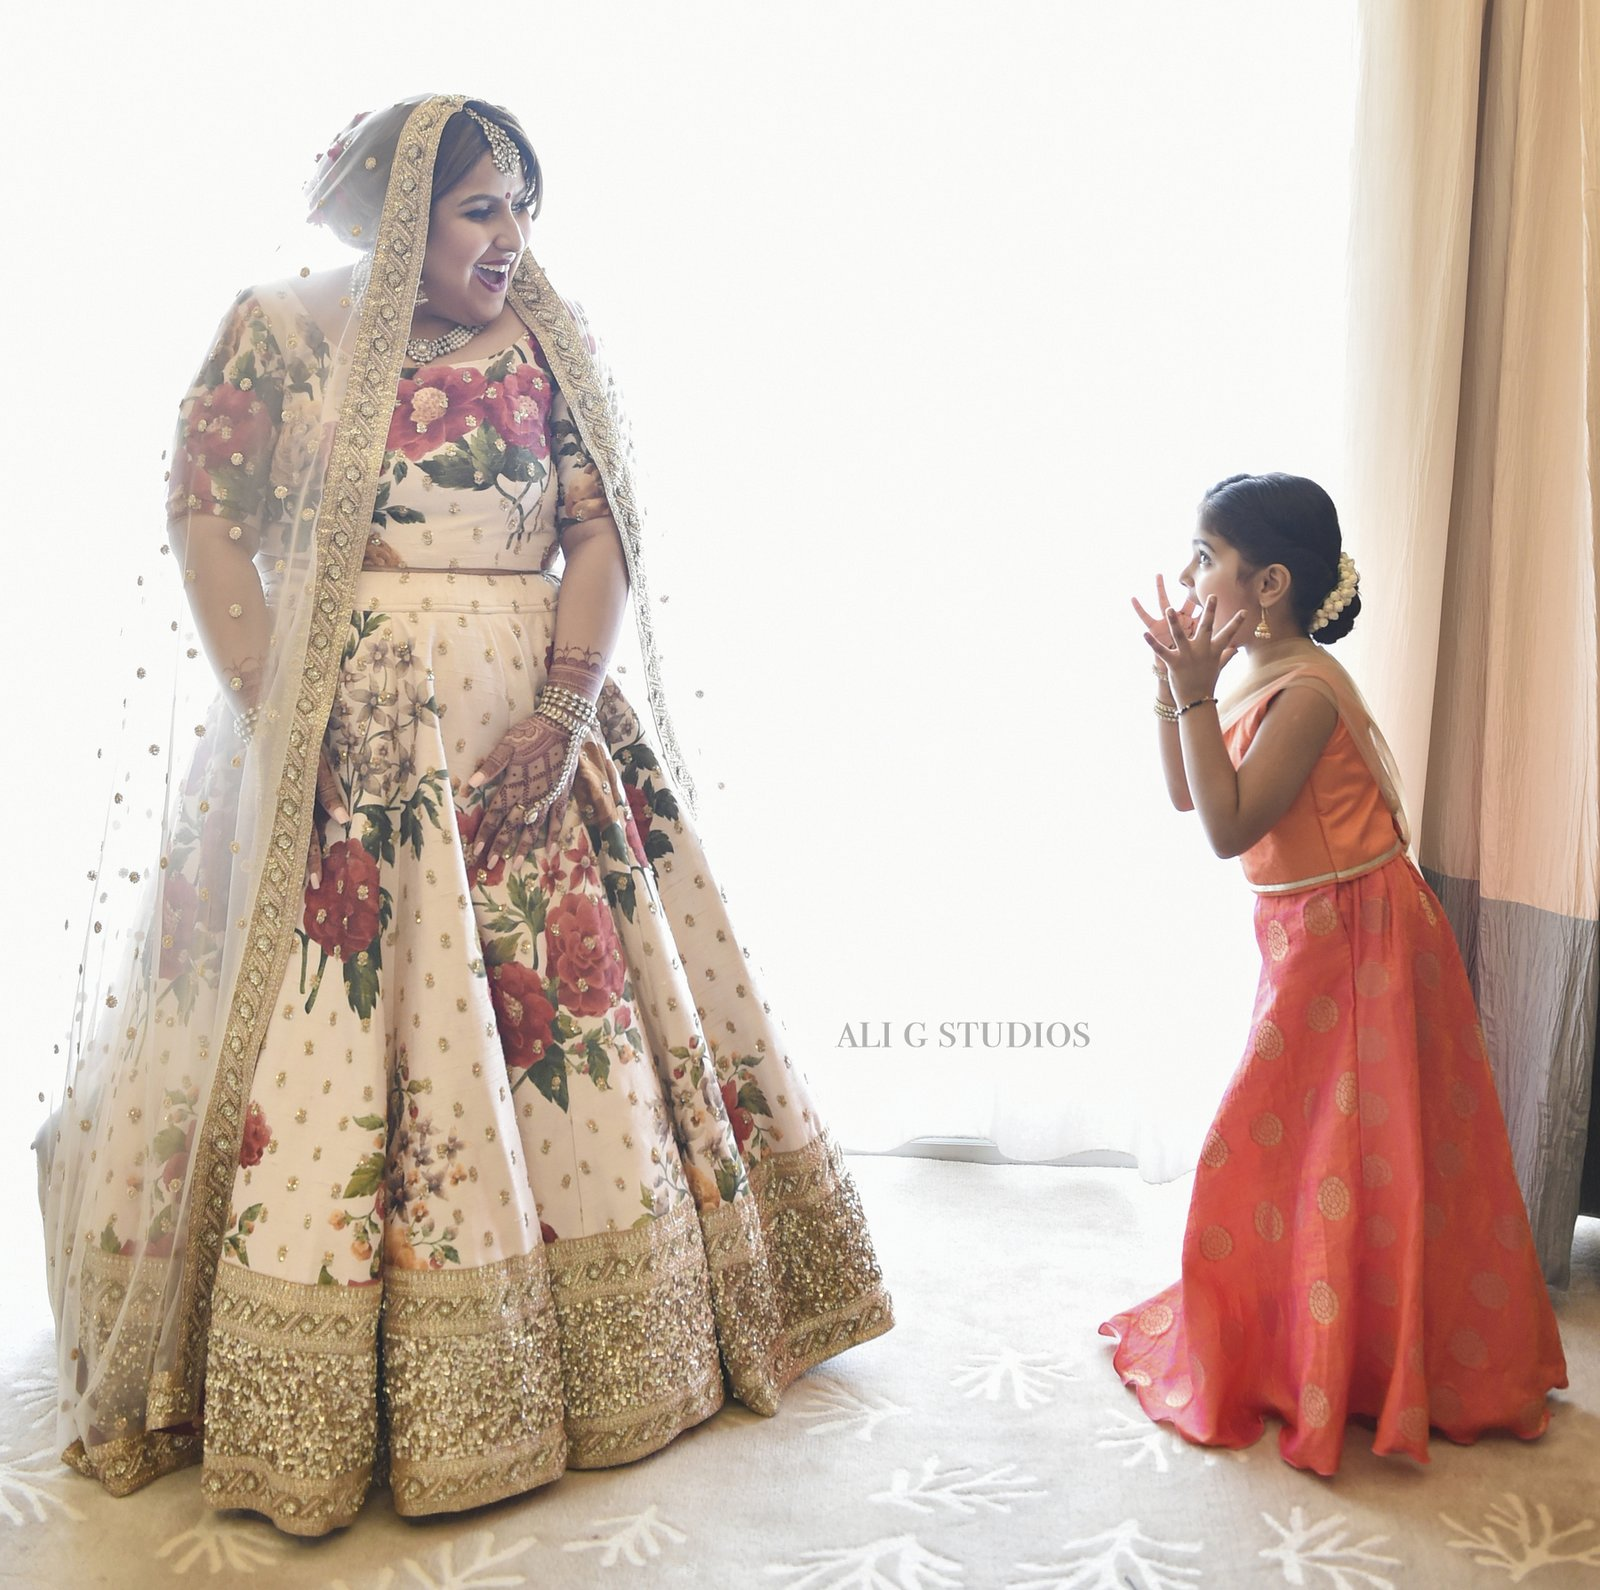 Dolly, plus-sized Indian bride goes viral